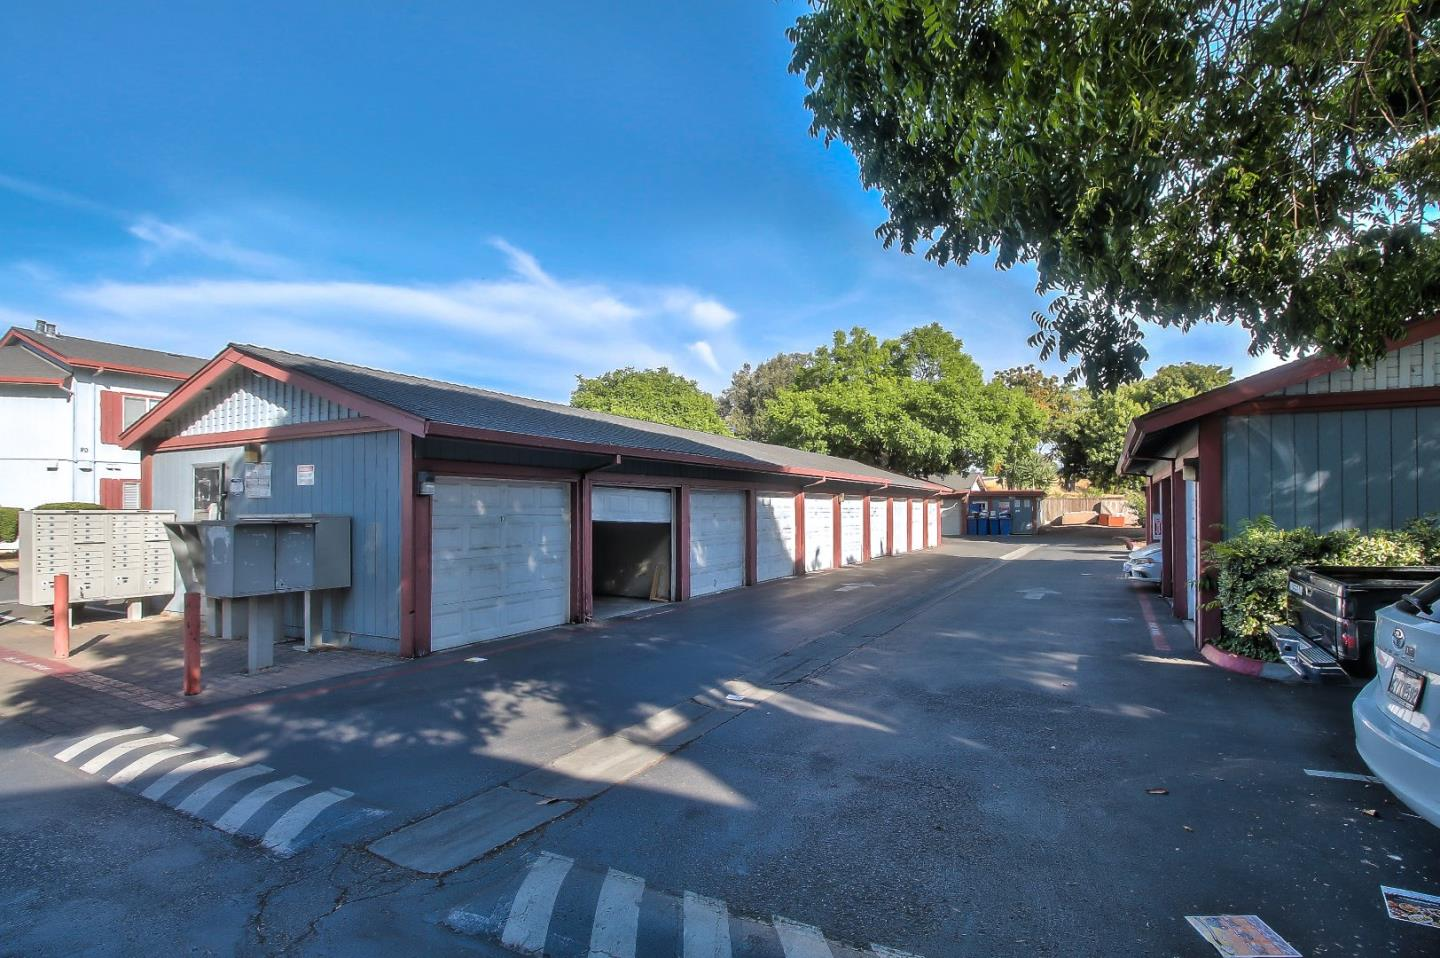 72 Rancho Drive Unit G San Jose, CA 95111 - MLS #: ML81716524